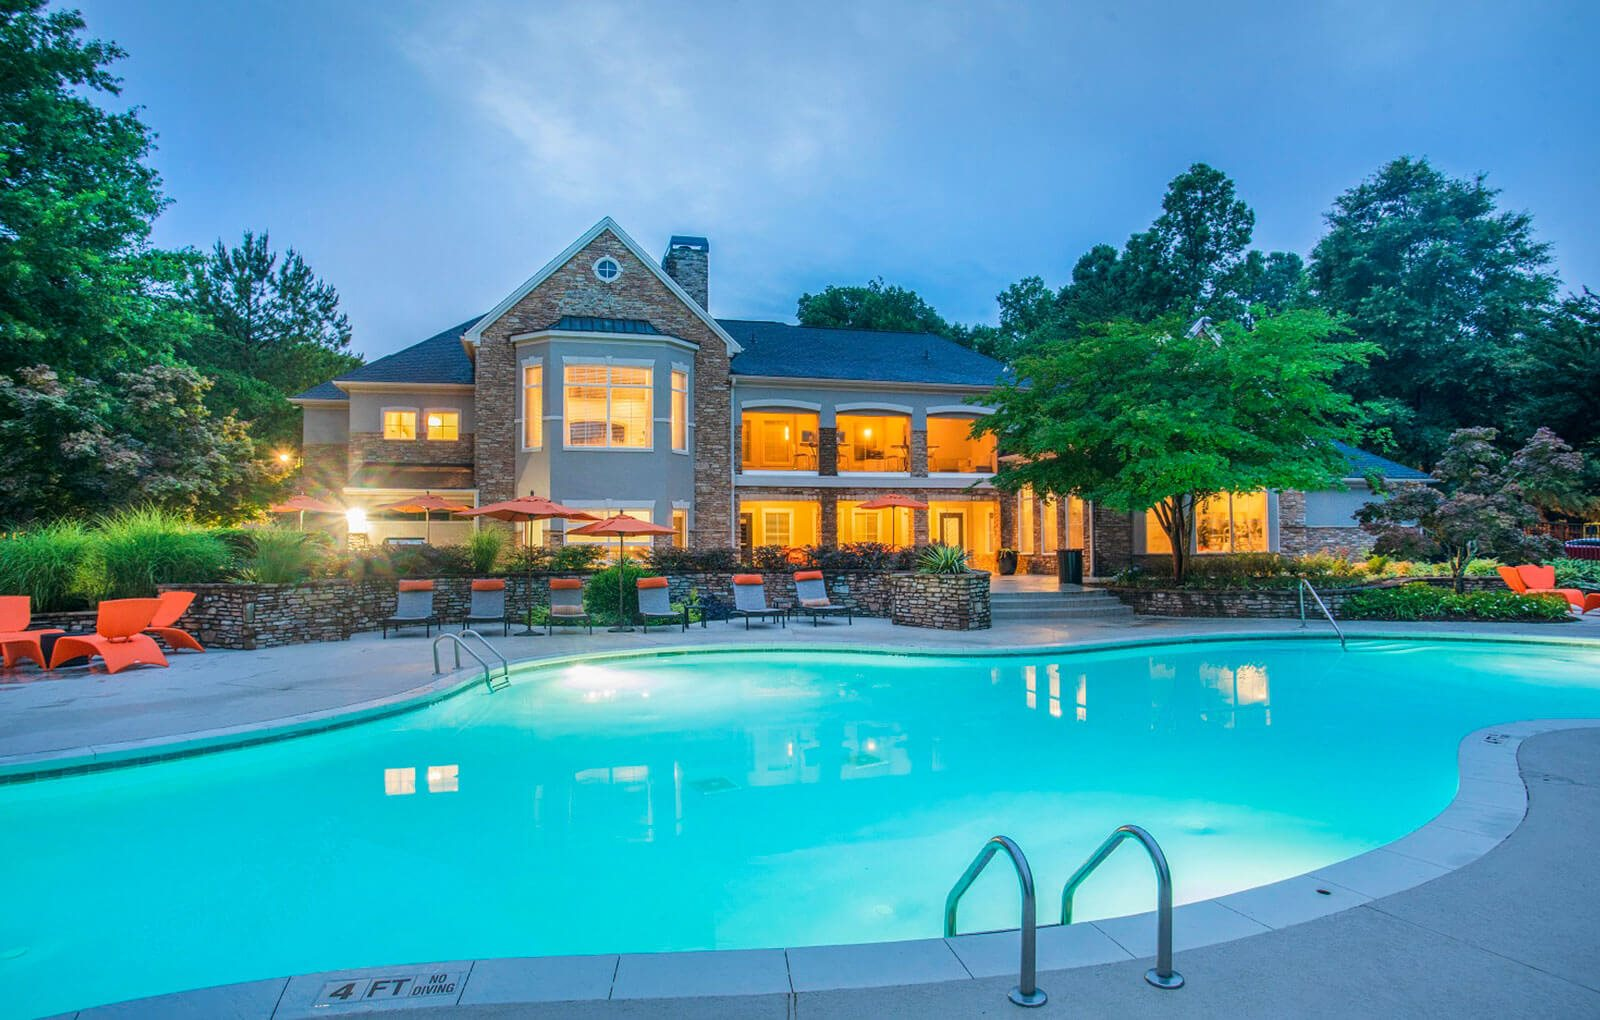 Revitalizing Resort Style Swimming Pool with Relaxation Space and Seating Area at Merritt at Sugarloaf Apartment Homes, Duluth, GA 30096